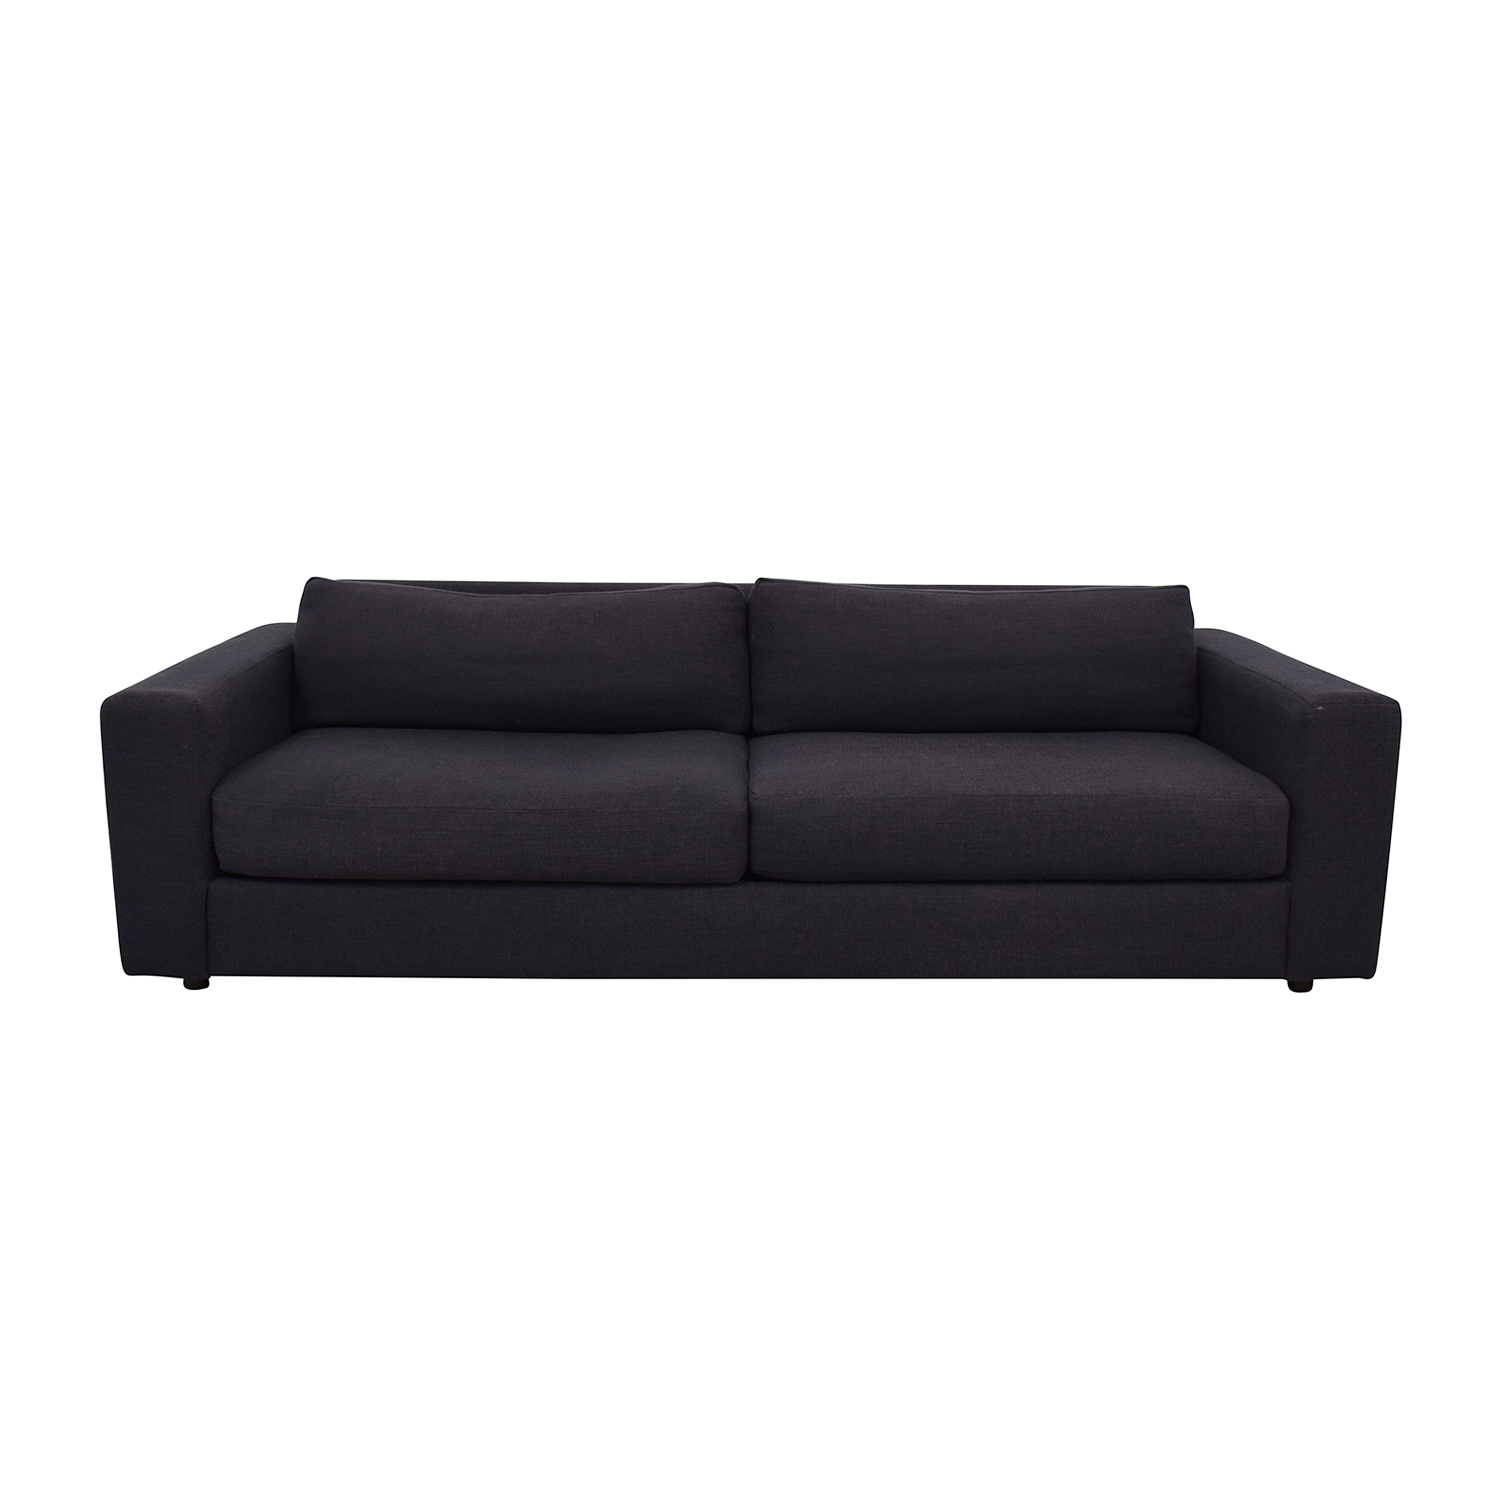 West Elm West Elm Charcoal Sofa for sale